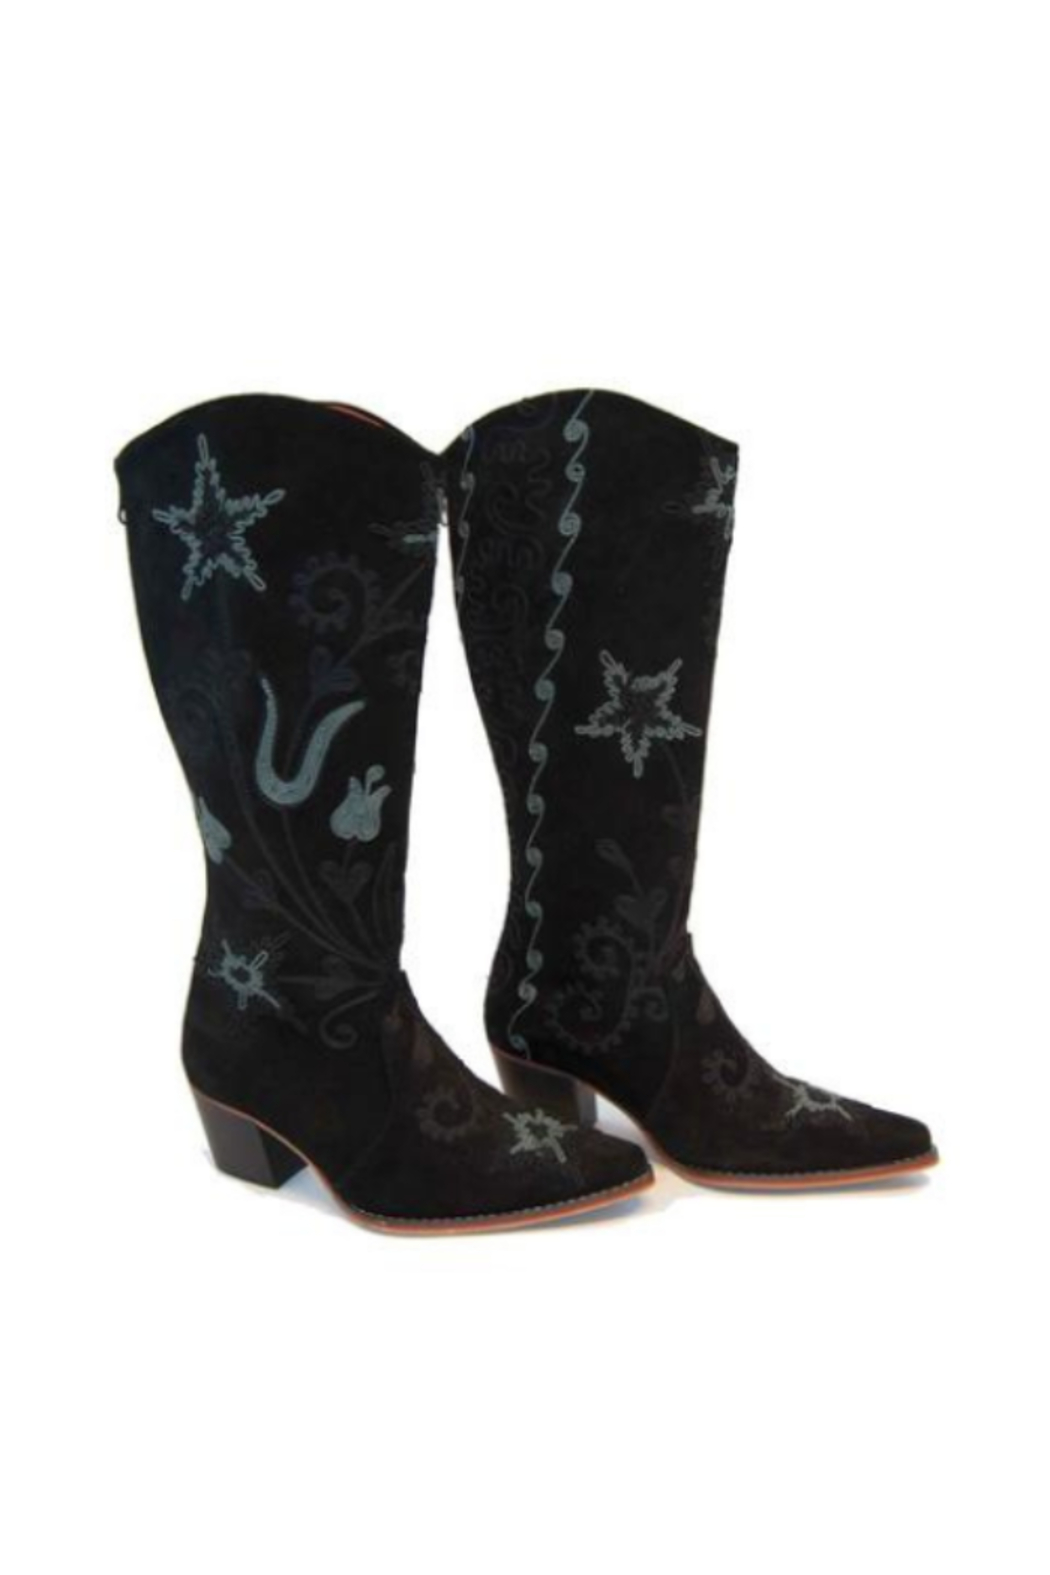 Artemis Collections Inc Cheyenne Tall Embroidered Brushed Leather 2 - Main Image